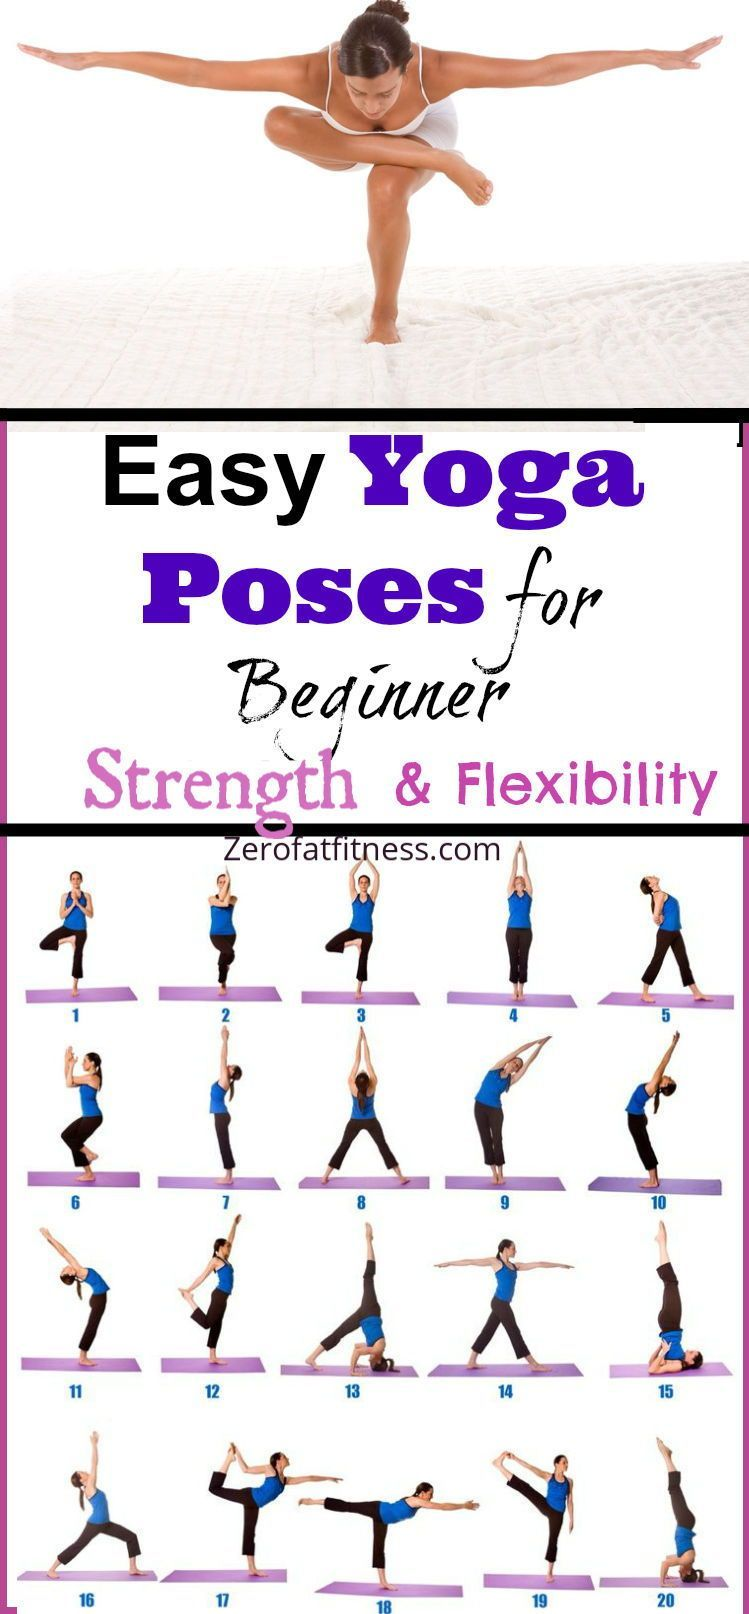 10 Minute Beginners Yoga Poses For Flexibility And Strength Yogaforbeginners 10 Minute Beginners Yoga Morning Yoga Poses Easy Yoga Workouts Easy Morning Yoga